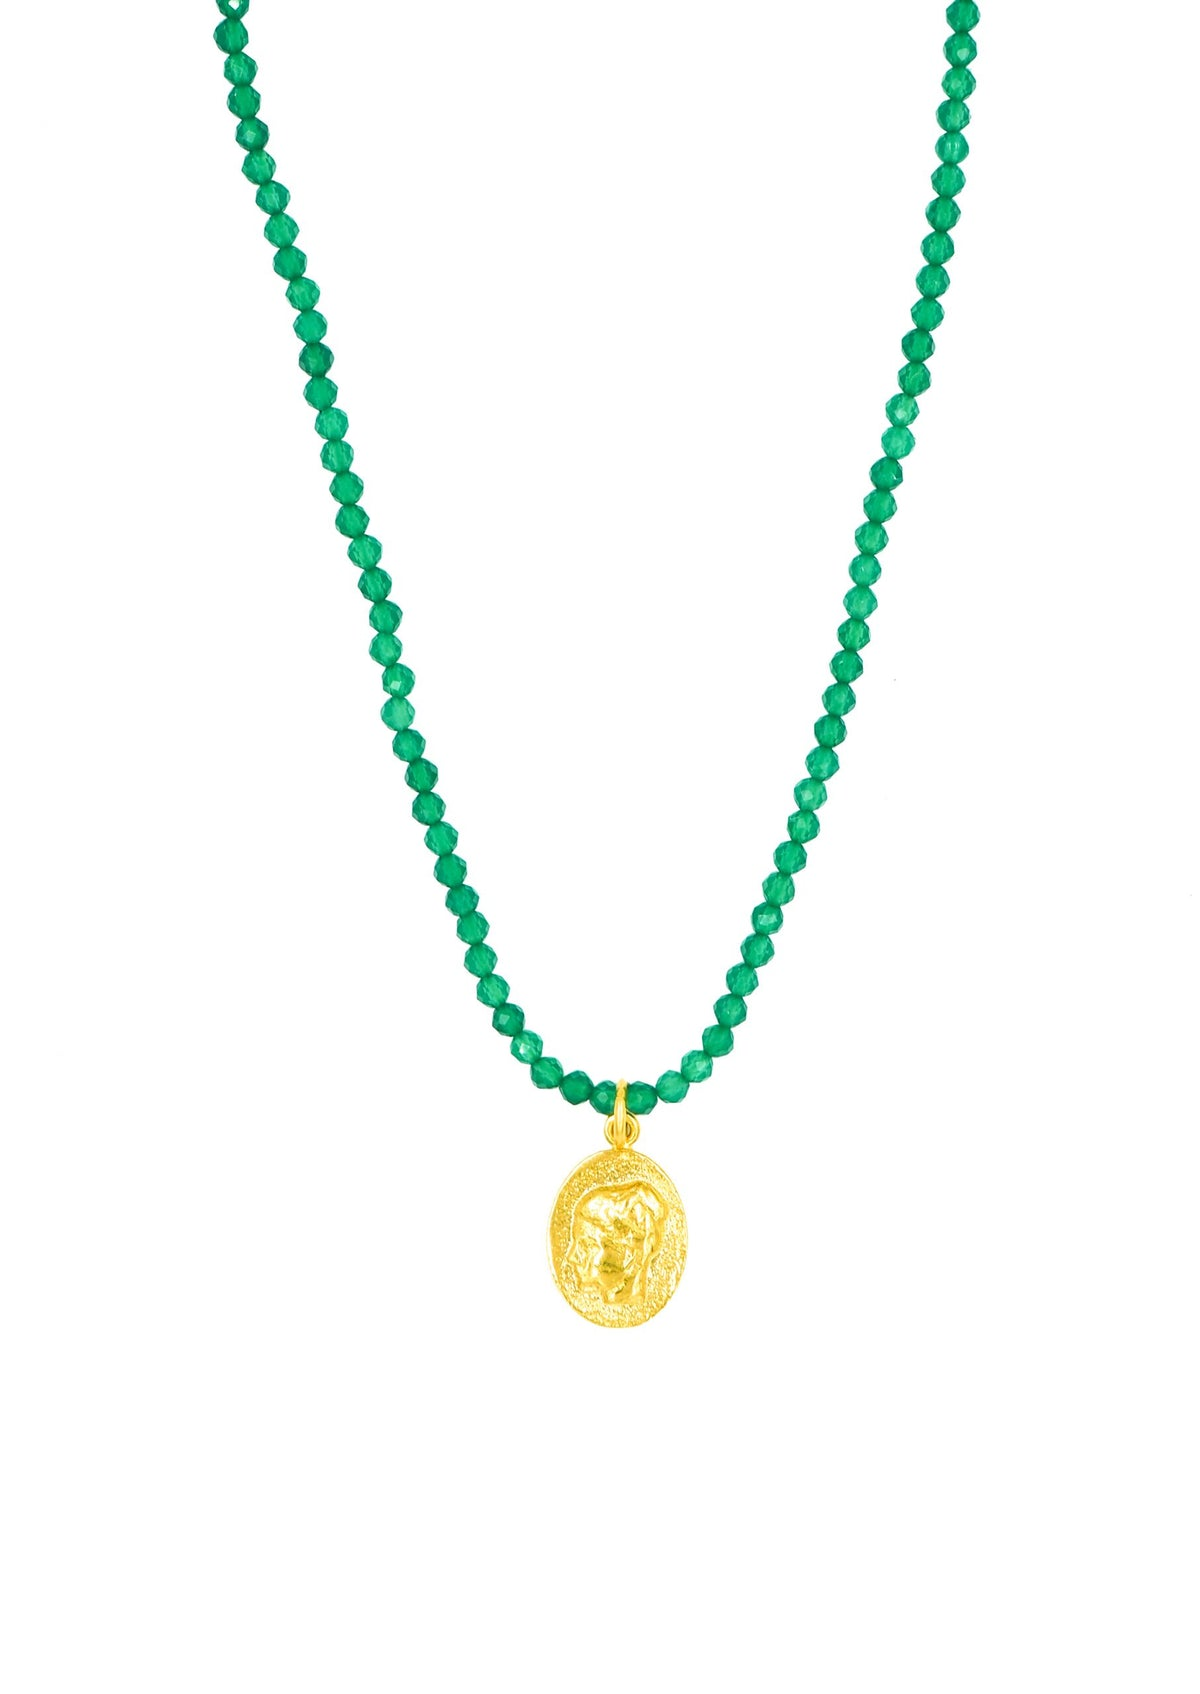 HERMINA Ygeia Emerald Necklace